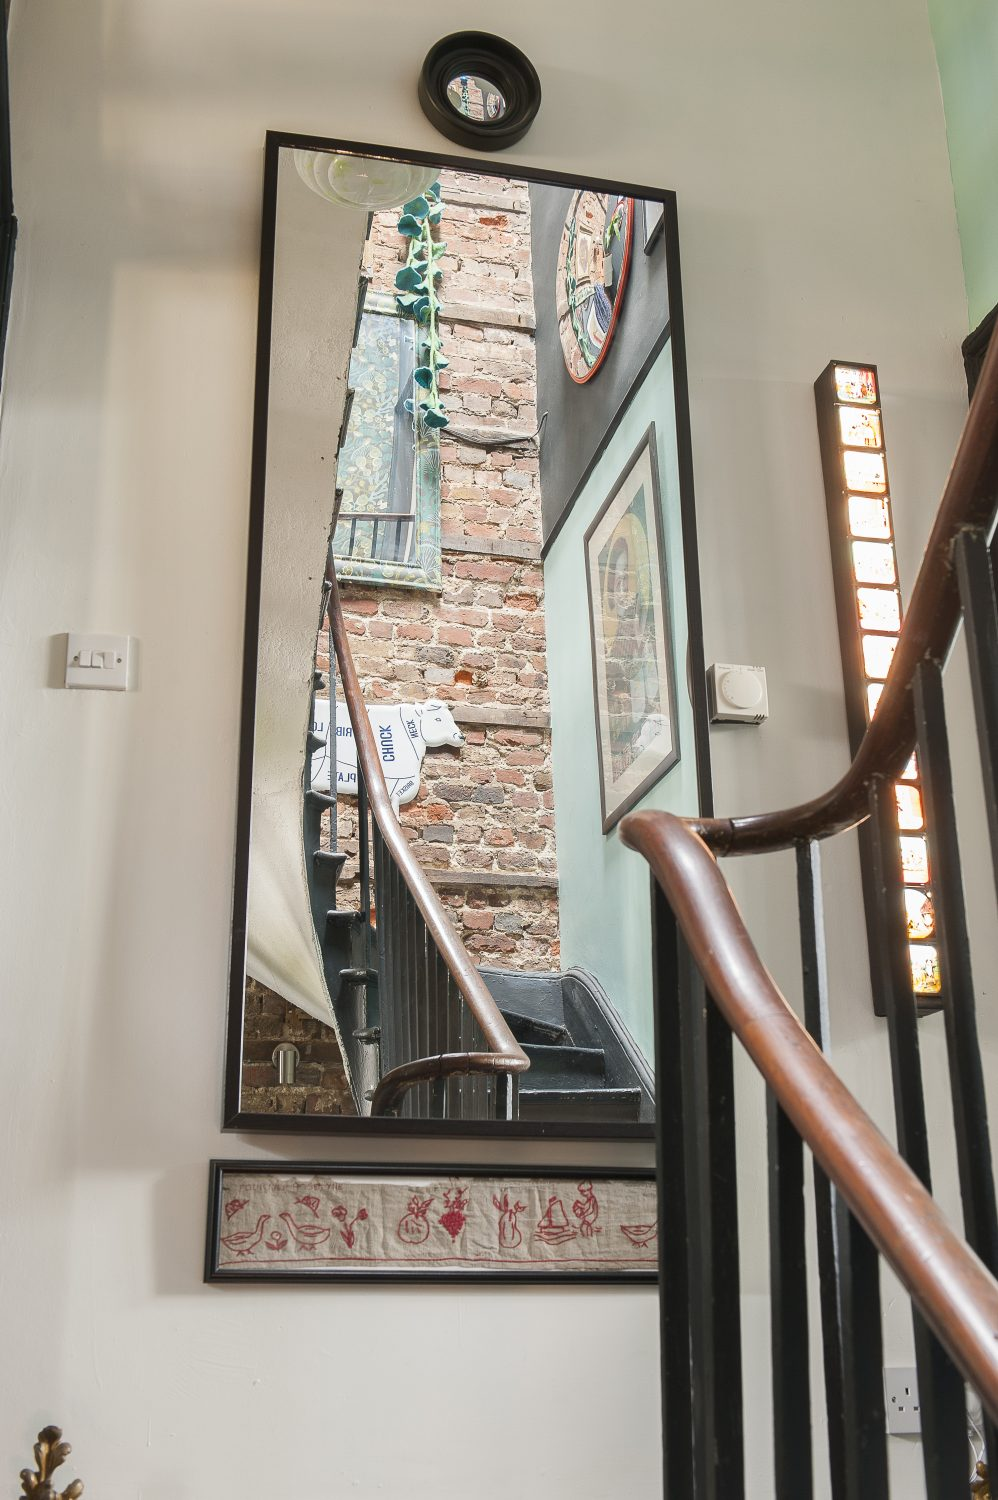 Strategically placed mirrors illuminate the potentially light-starved staircase that leads down to the stockroom in the basement